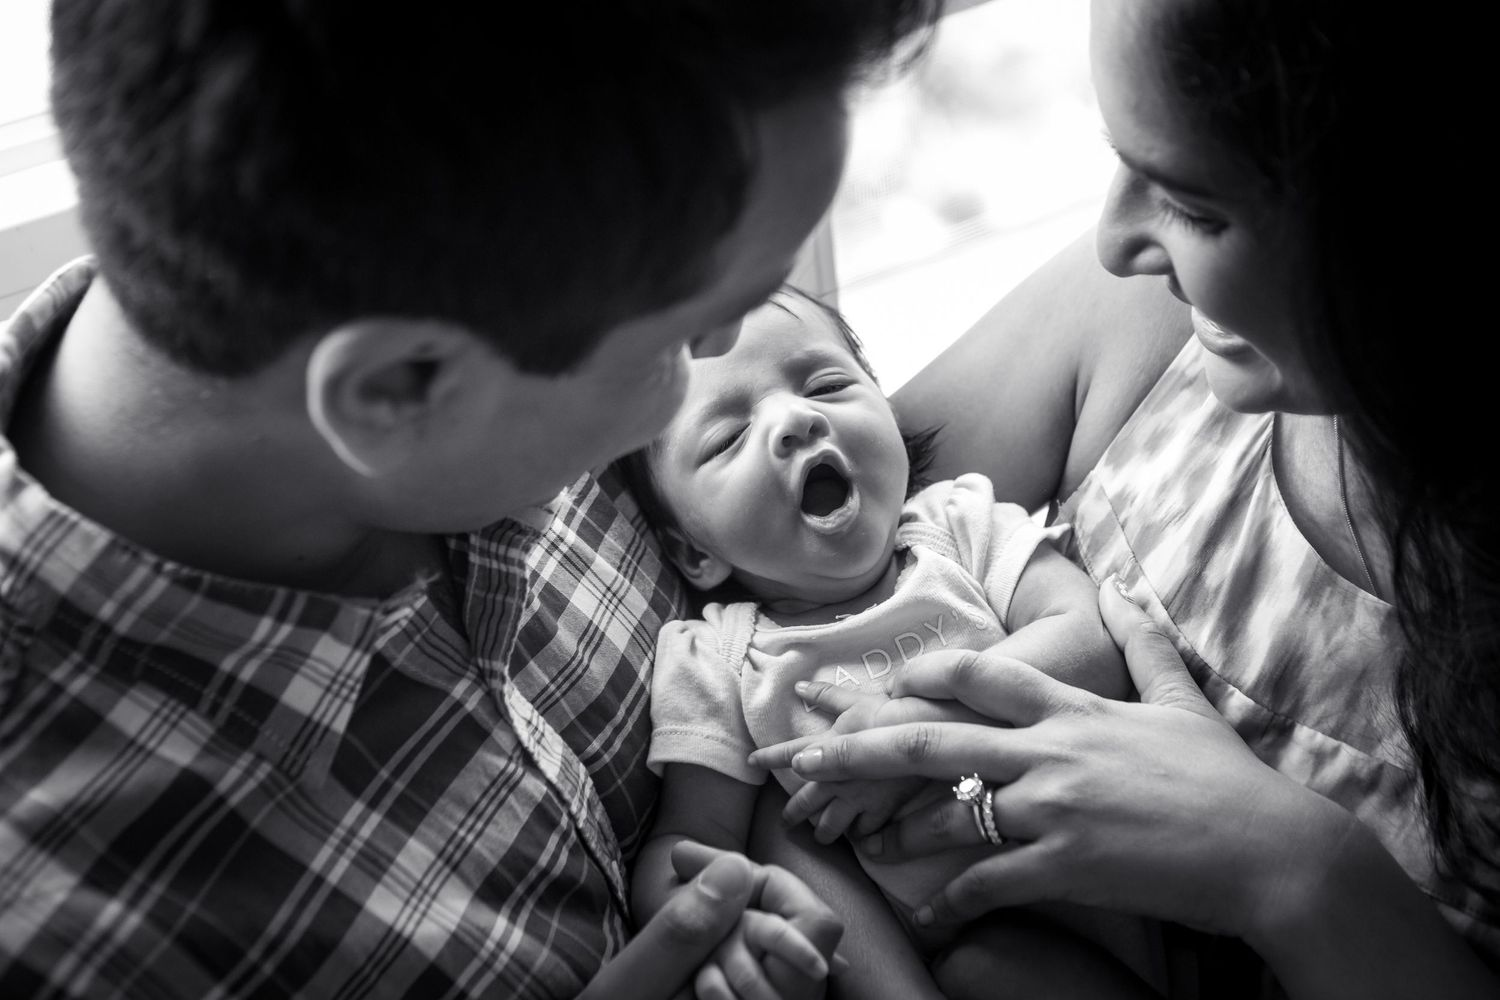 AnitaBarcsaPhotography-LifestyleFamily-Newborn-Photographer - SanFrancisco_Bay Area_SanJose_Spring_Fertility_Booking_Pac